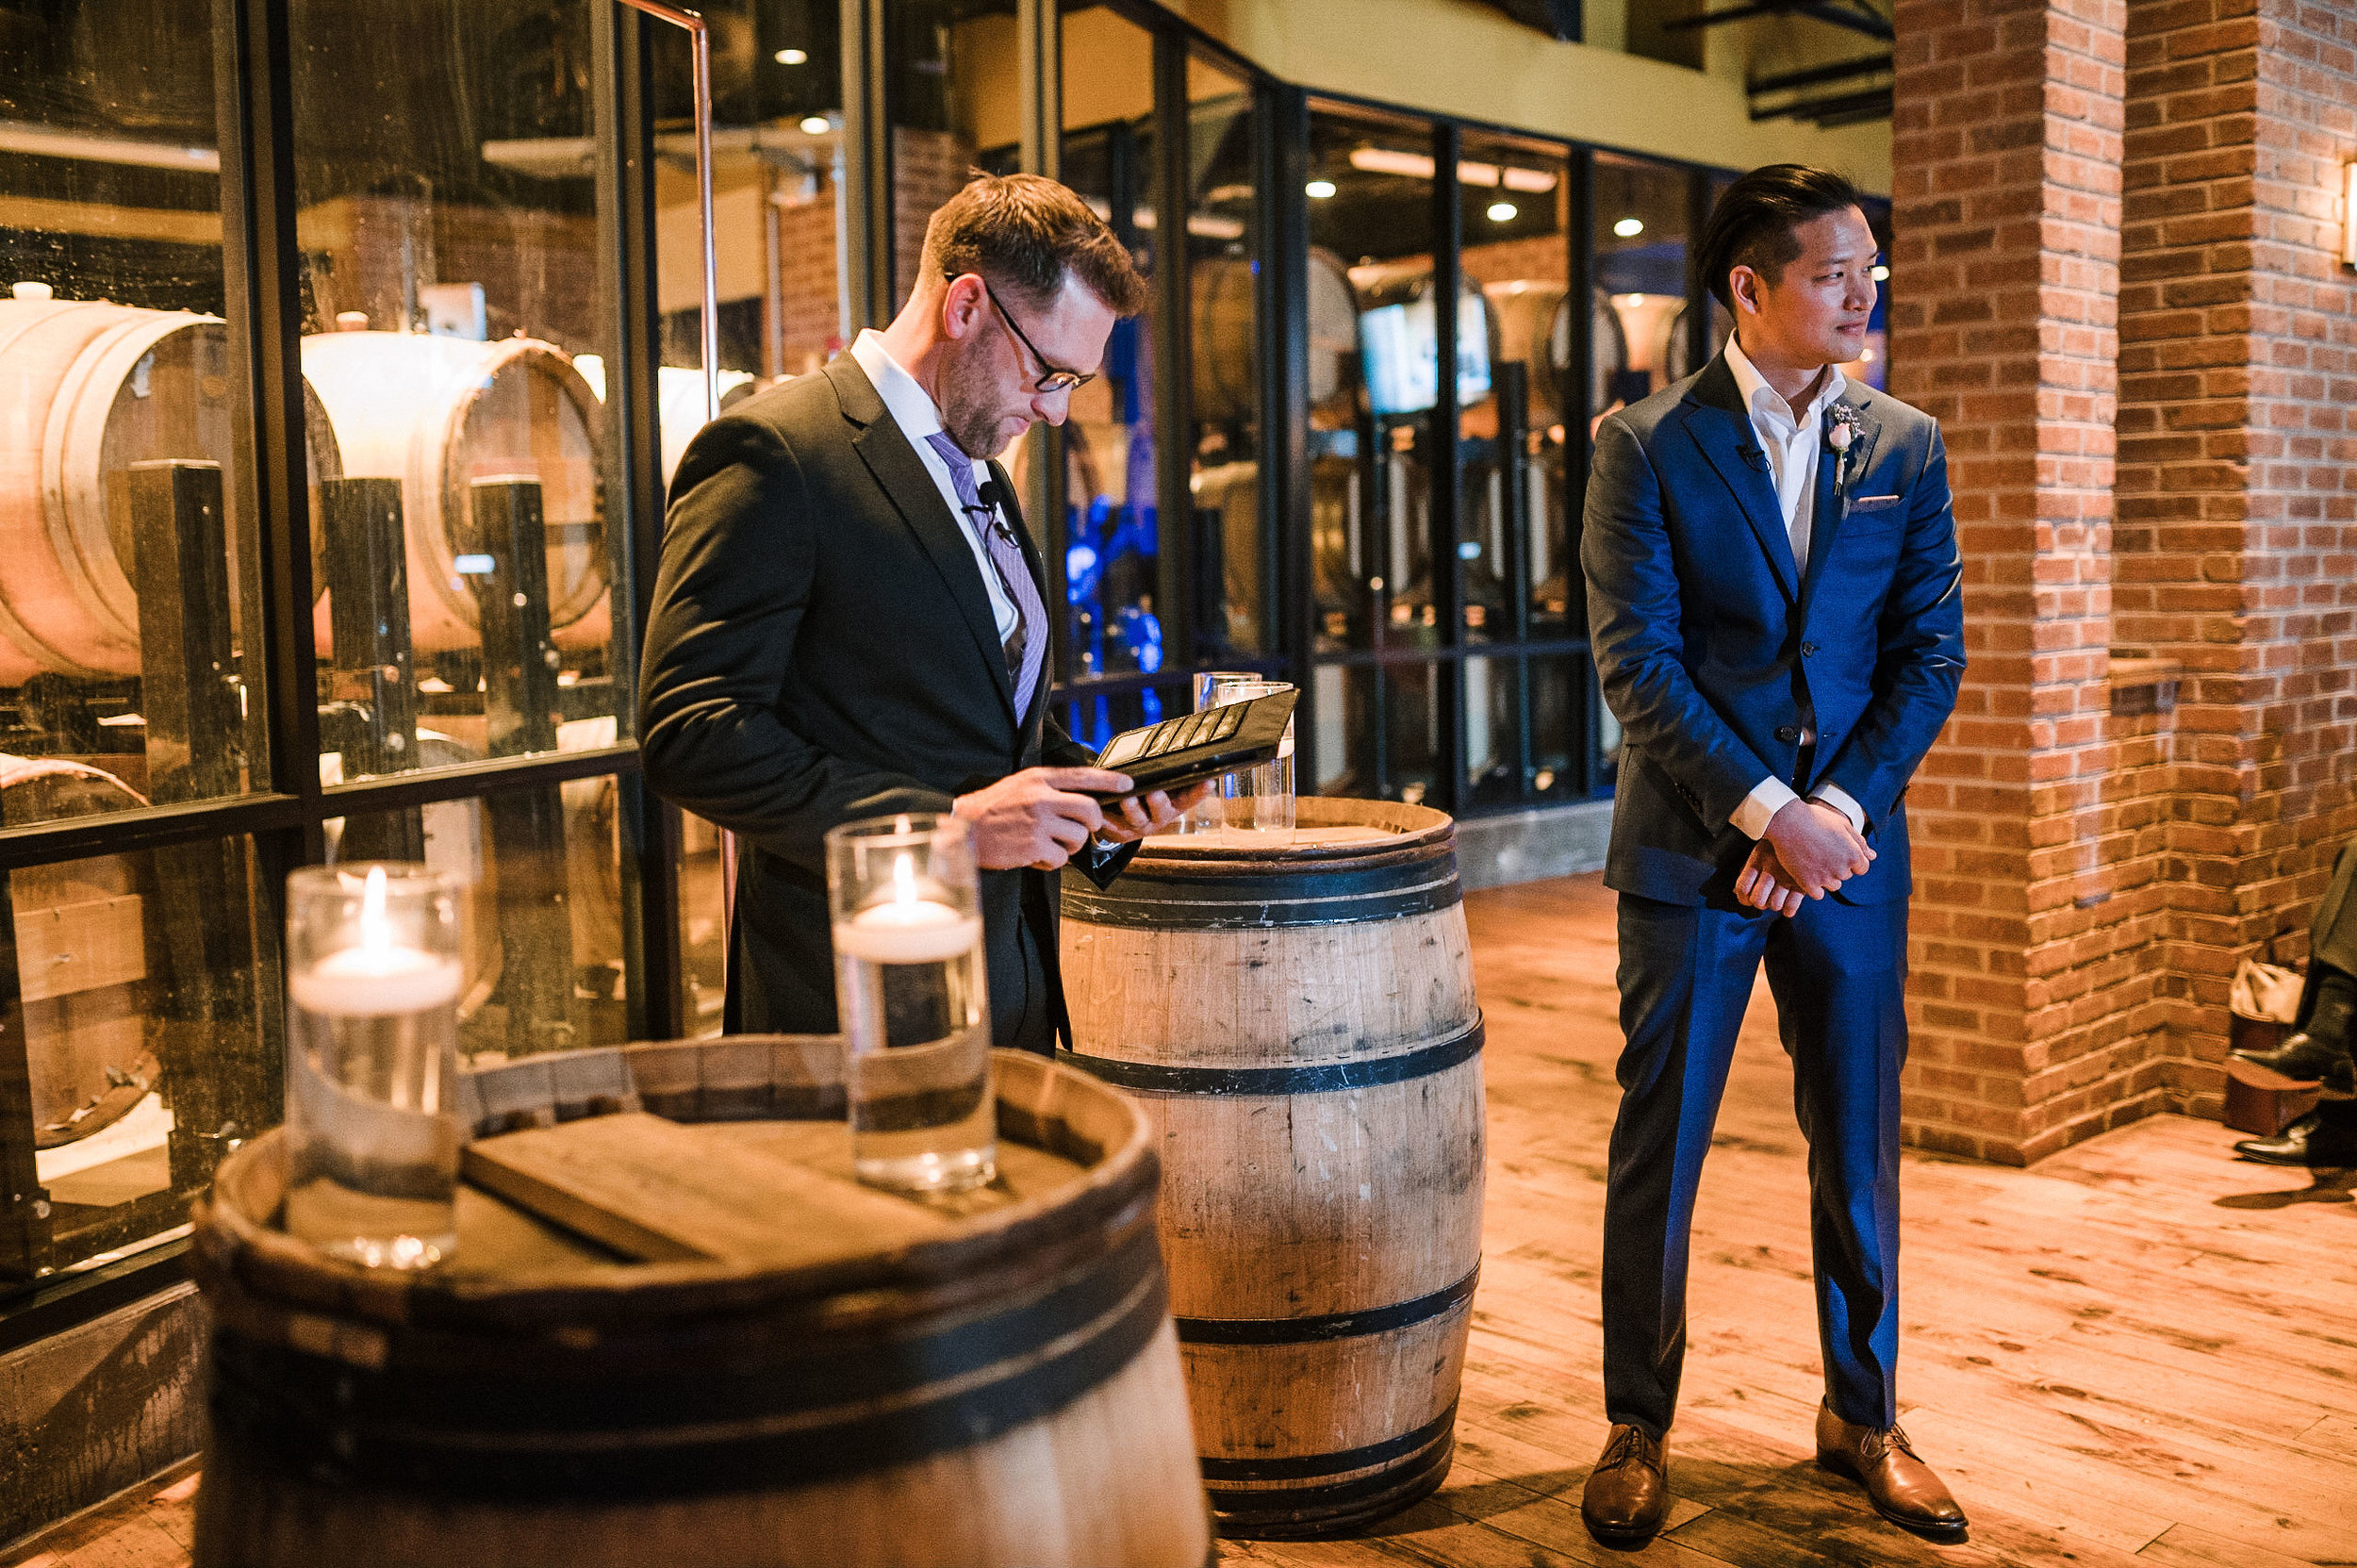 groom waiting for bride at alter at City Winery in Washington DC